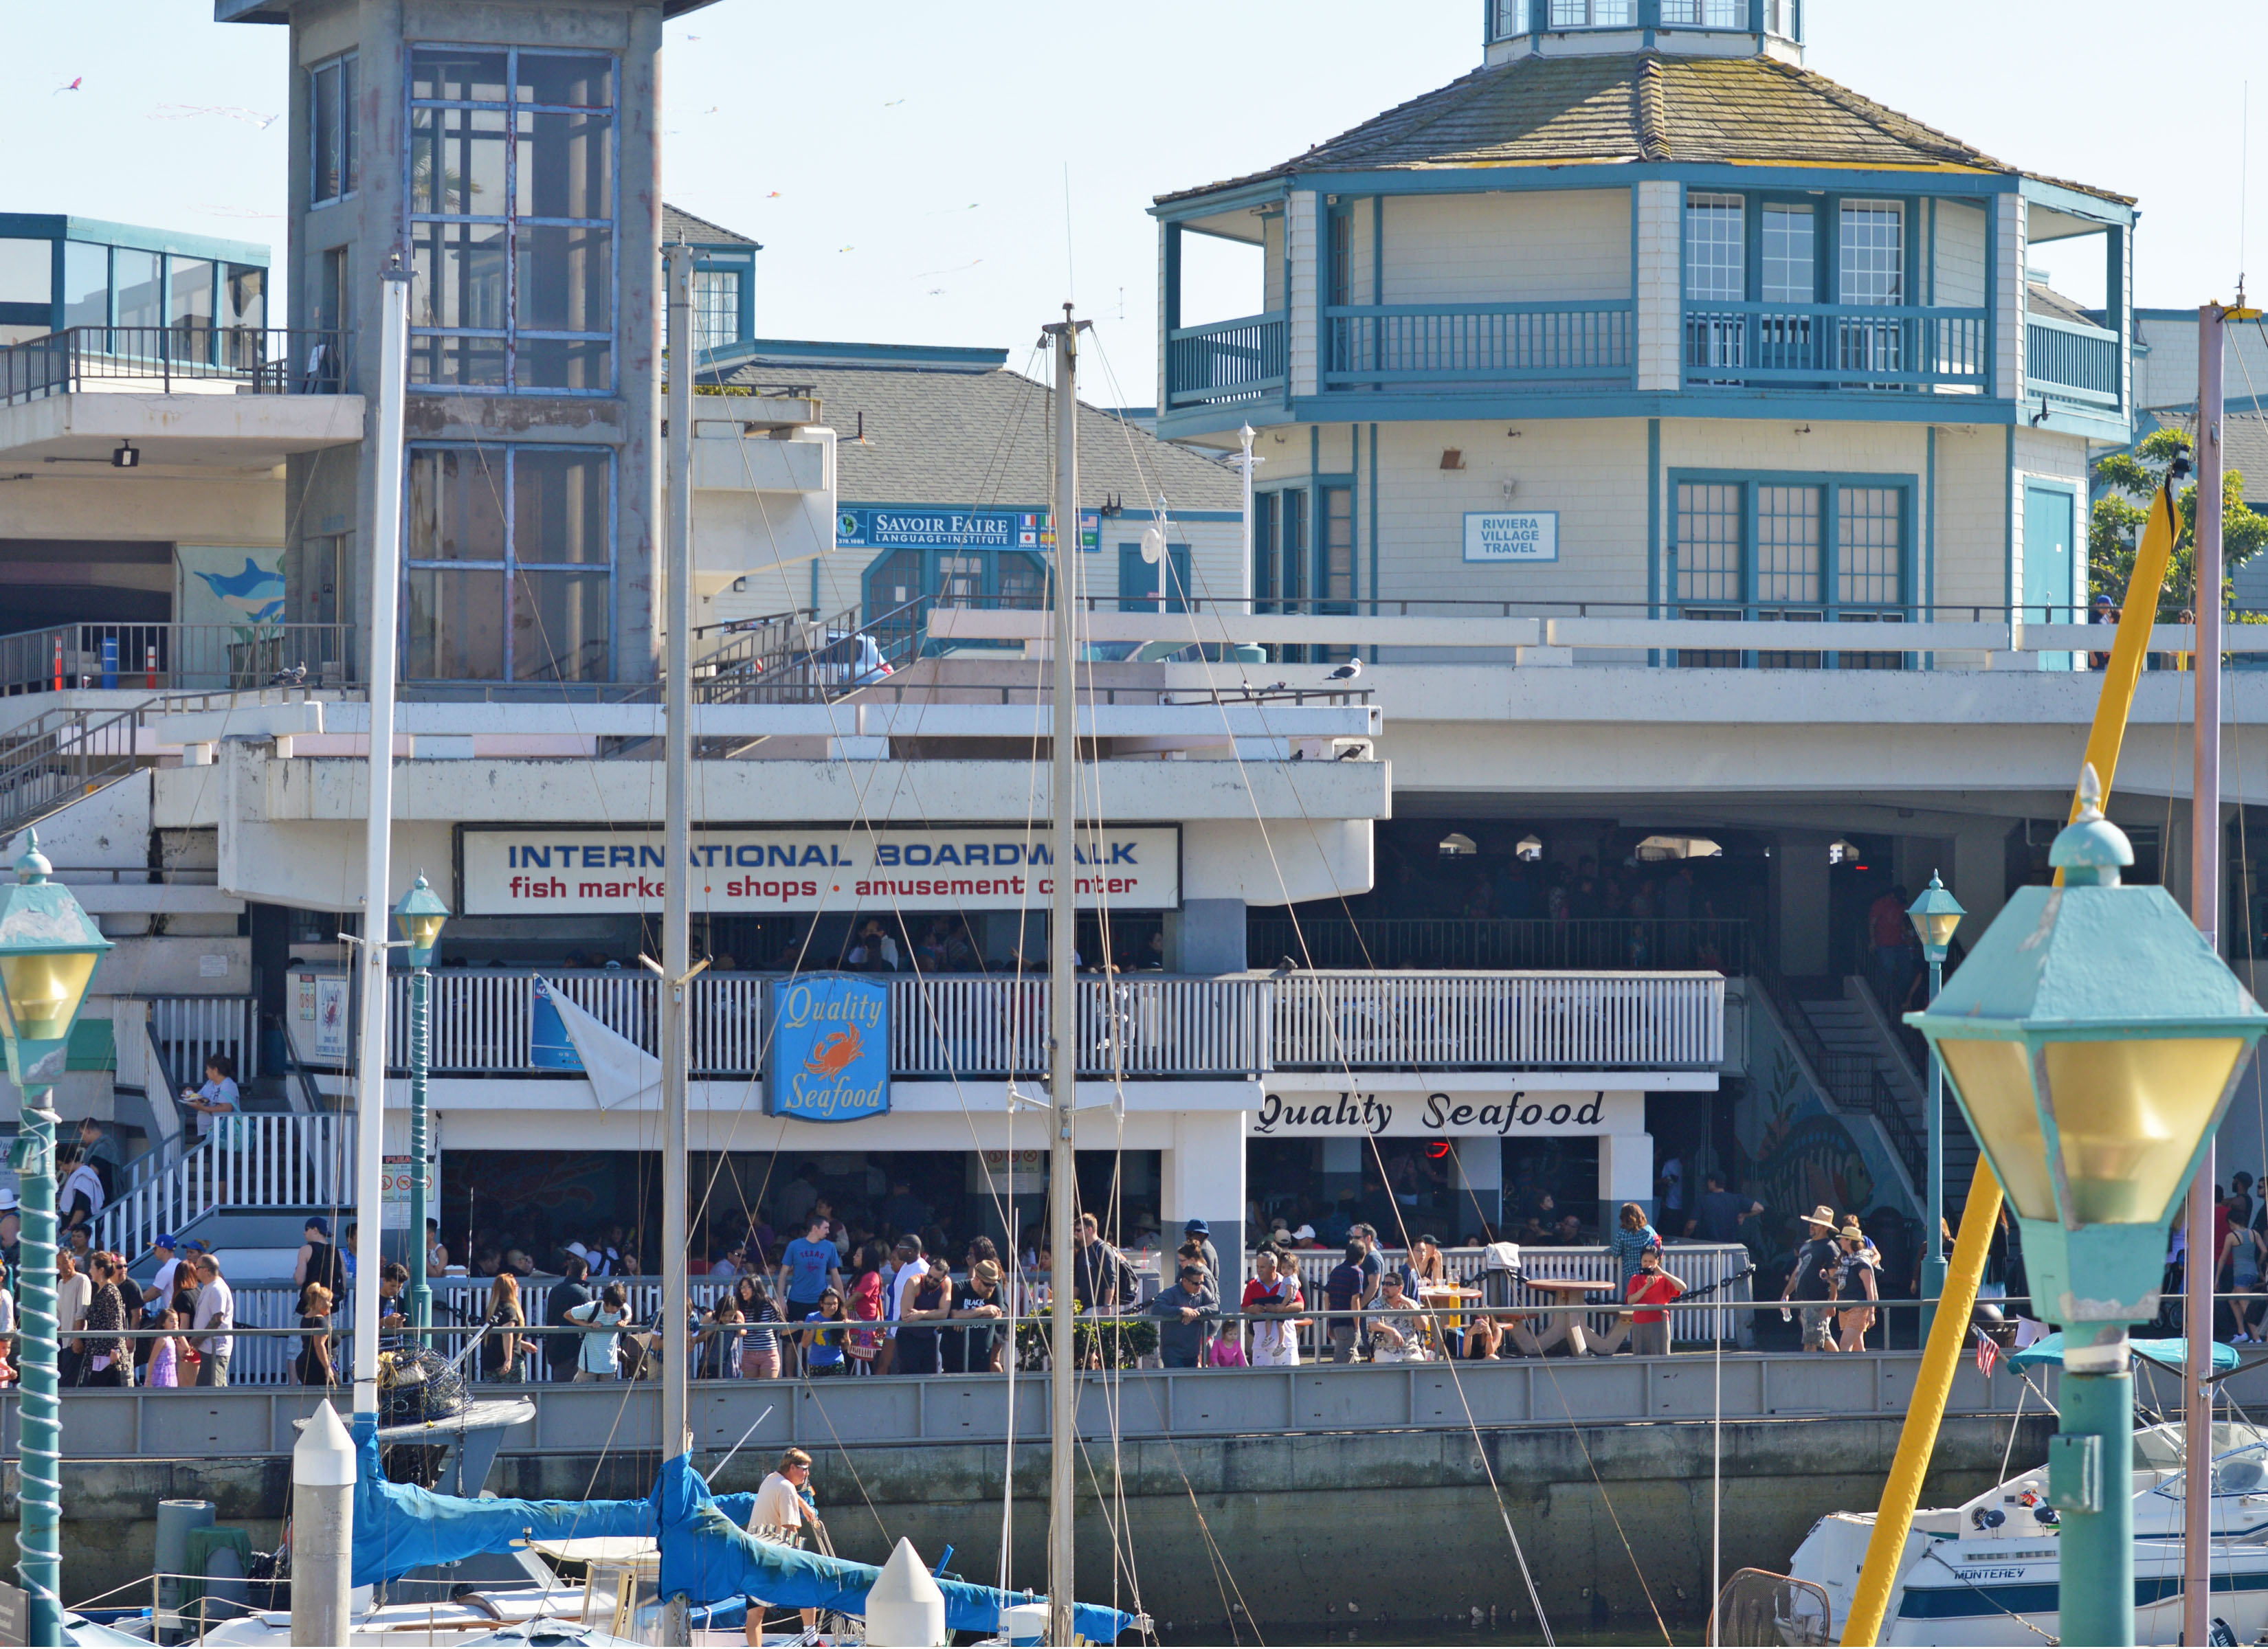 Stores and shopping malls in Redondo Beach: a comprehensive shopping guide to Redondo Beach Stores and shopping malls. Outlets, department stores, .